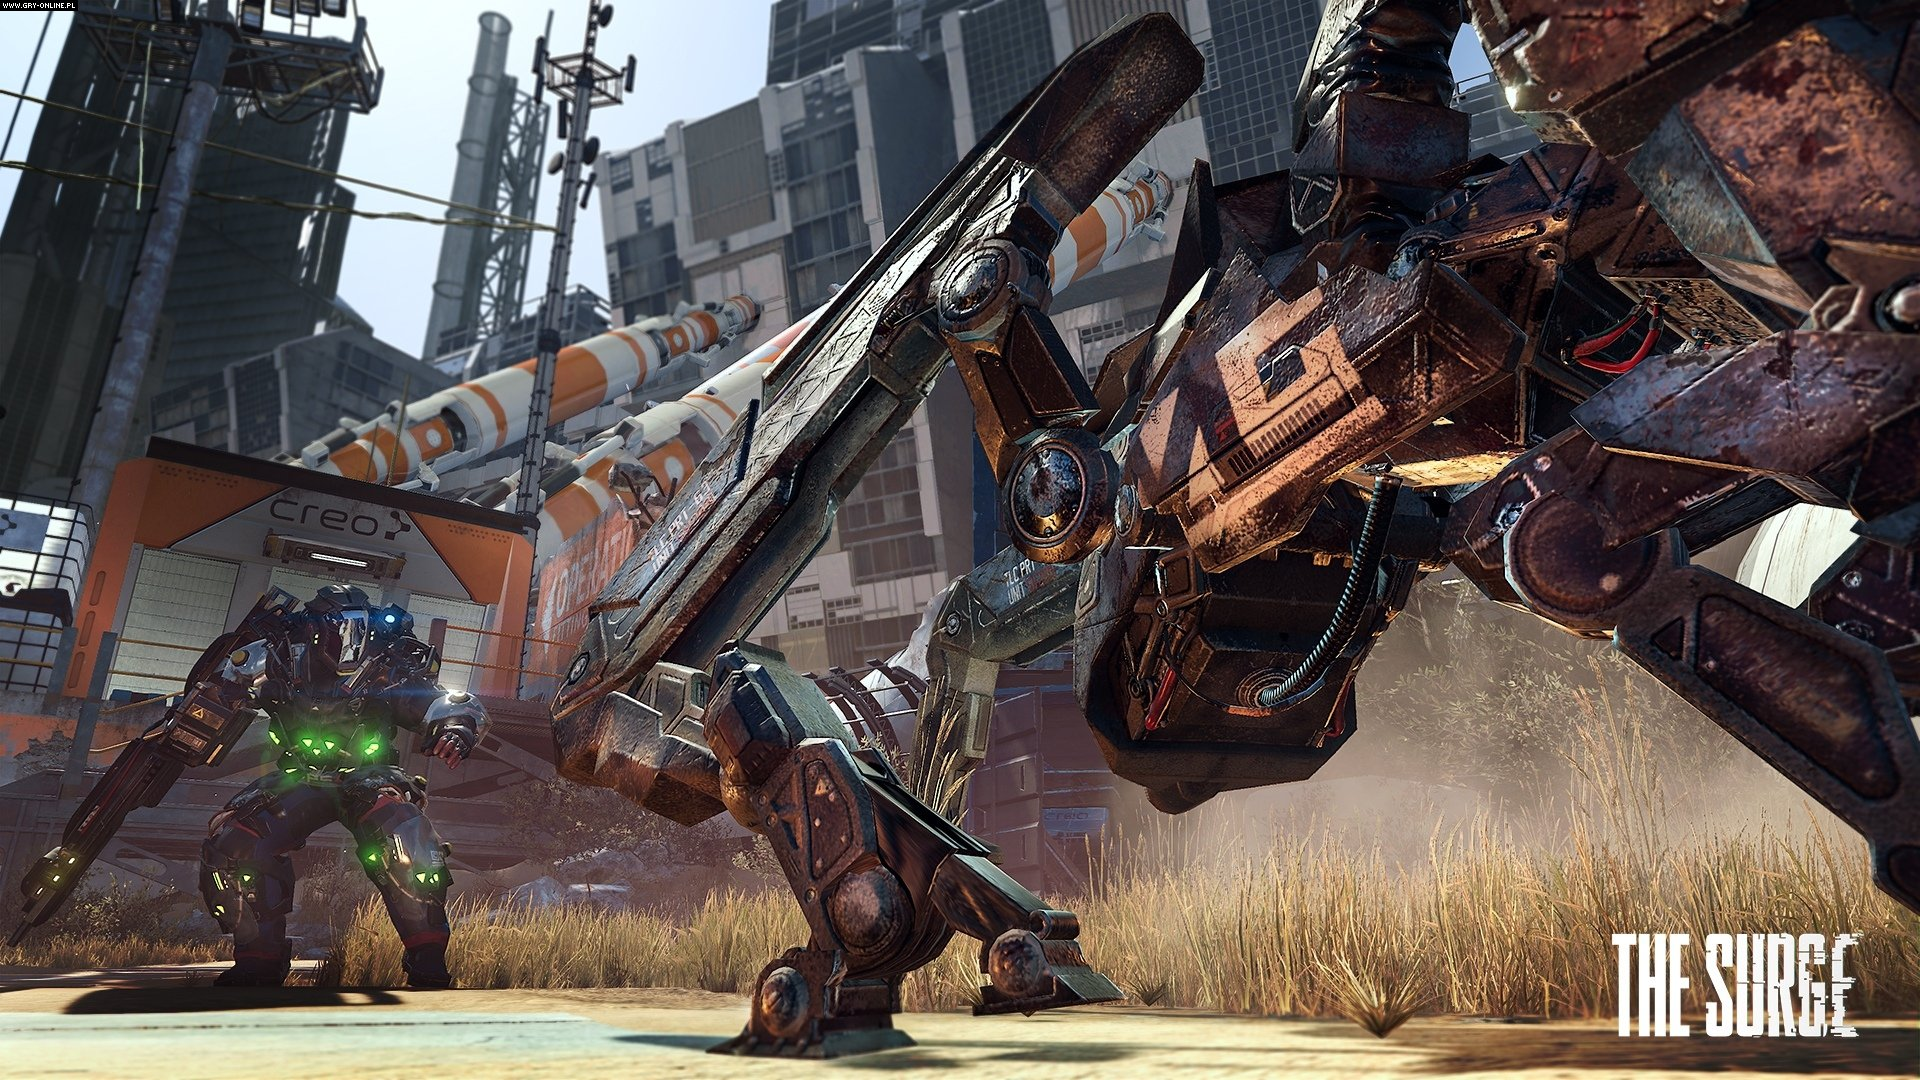 The Surge PC, PS4, XONE Games Image 5/12, Deck13 Interactive, Focus Home Interactive